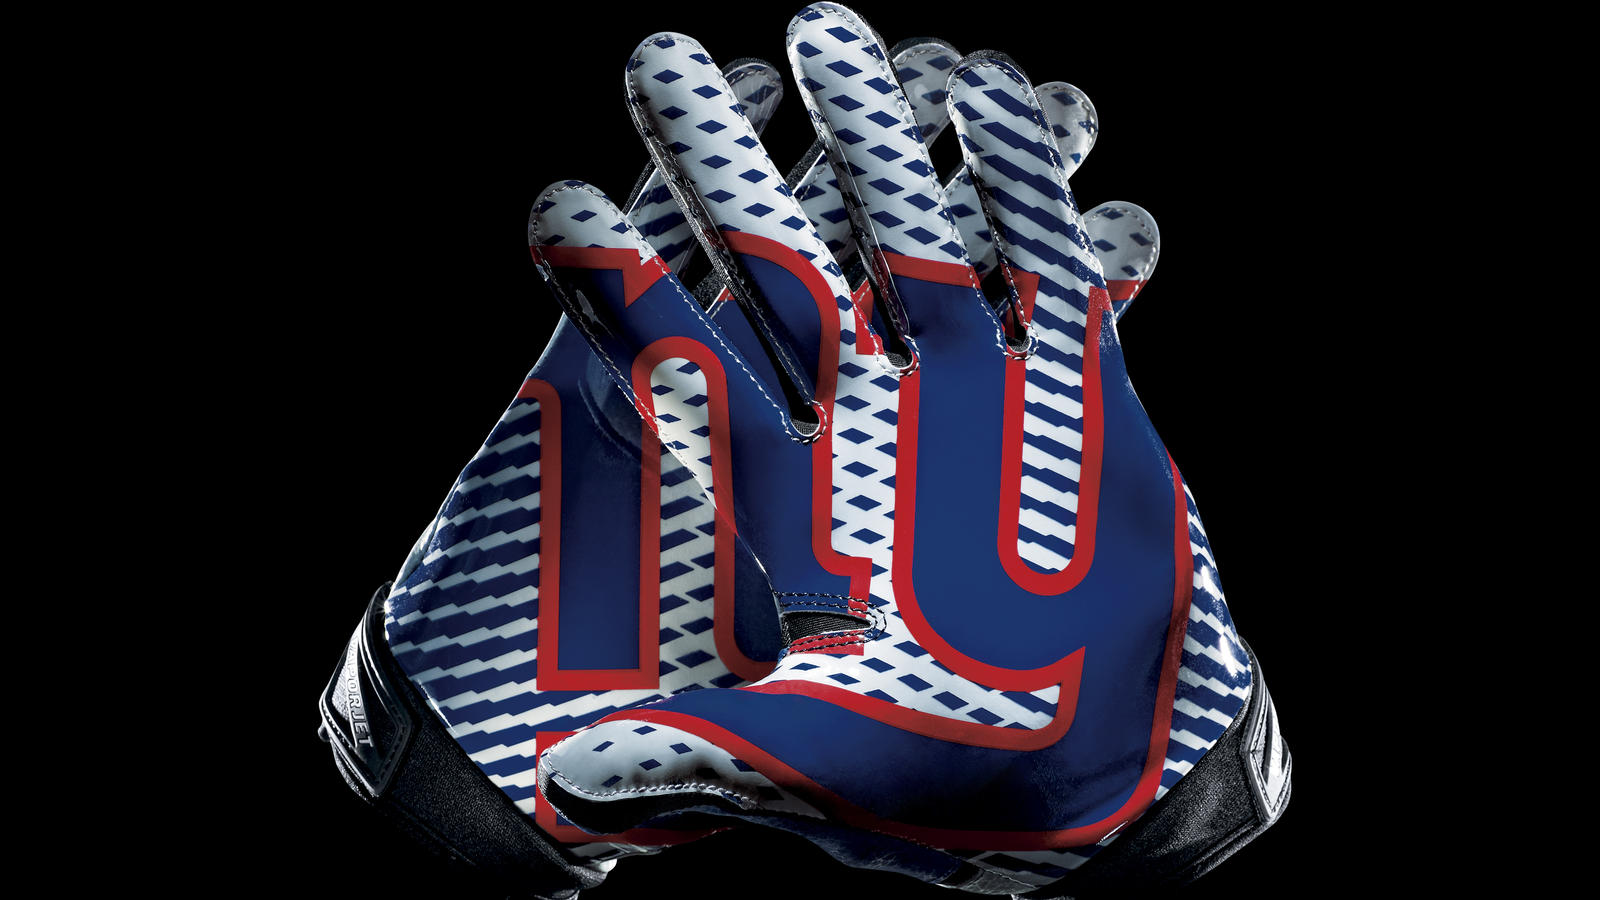 Nike_Football_NFL_UNIFORM_FRONT_GIANTS. Nike_Football_NFL_UNIFORM_BACK_GIANTS. NFL_2012_Giants_VaporJet2Glove. NFL_2012_Giants_VaporTalonElite